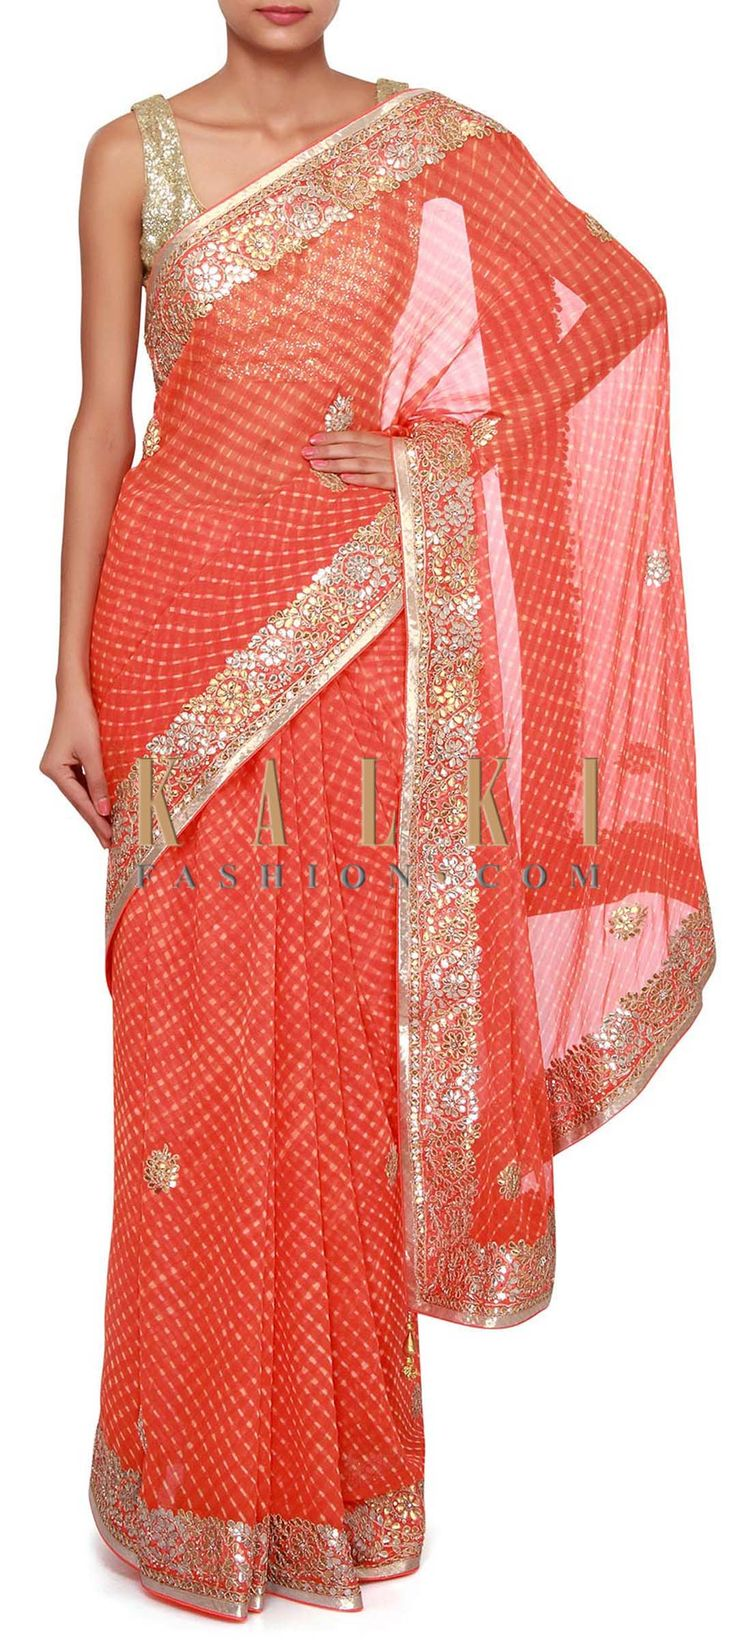 Buy Online from the link below. We ship worldwide (Free Shipping over US$100). Product SKU - 275632.Product Link - http://www.kalkifashion.com/orange-leheriya-saree-adorn-in-gotta-patch-border-only-on-kalki.html